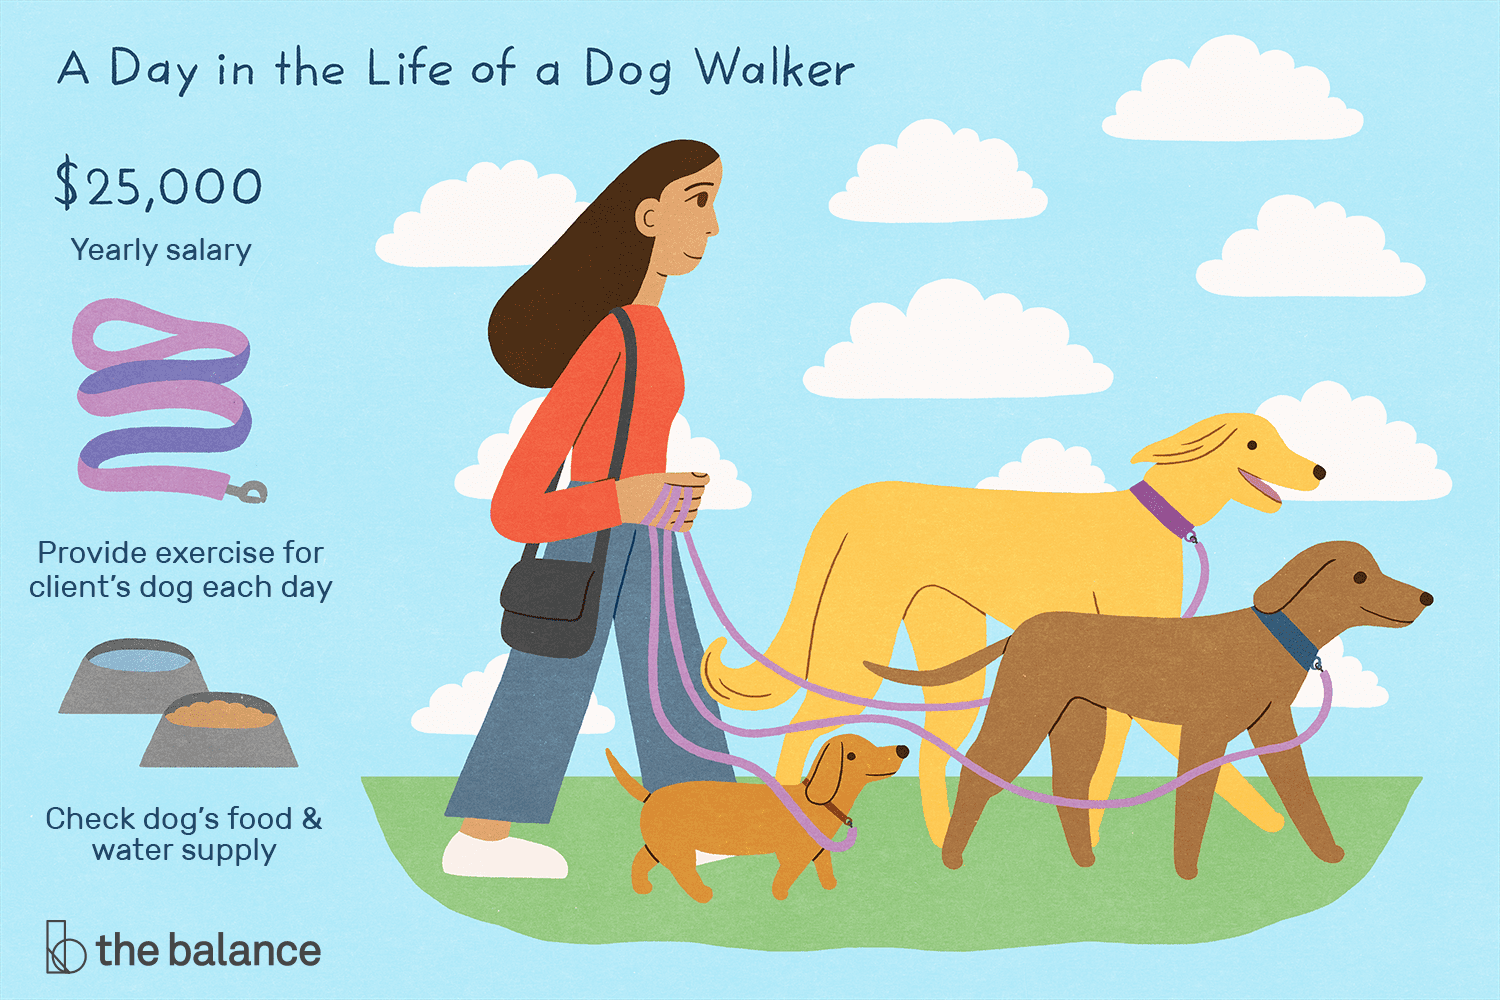 Dog Walkers Take Dogs Out For Their Needed Exercise The Job Can Be A Good Fit For Those Who Want Independent Flex Dog Walker Pet Sitting Business Pet Sitters